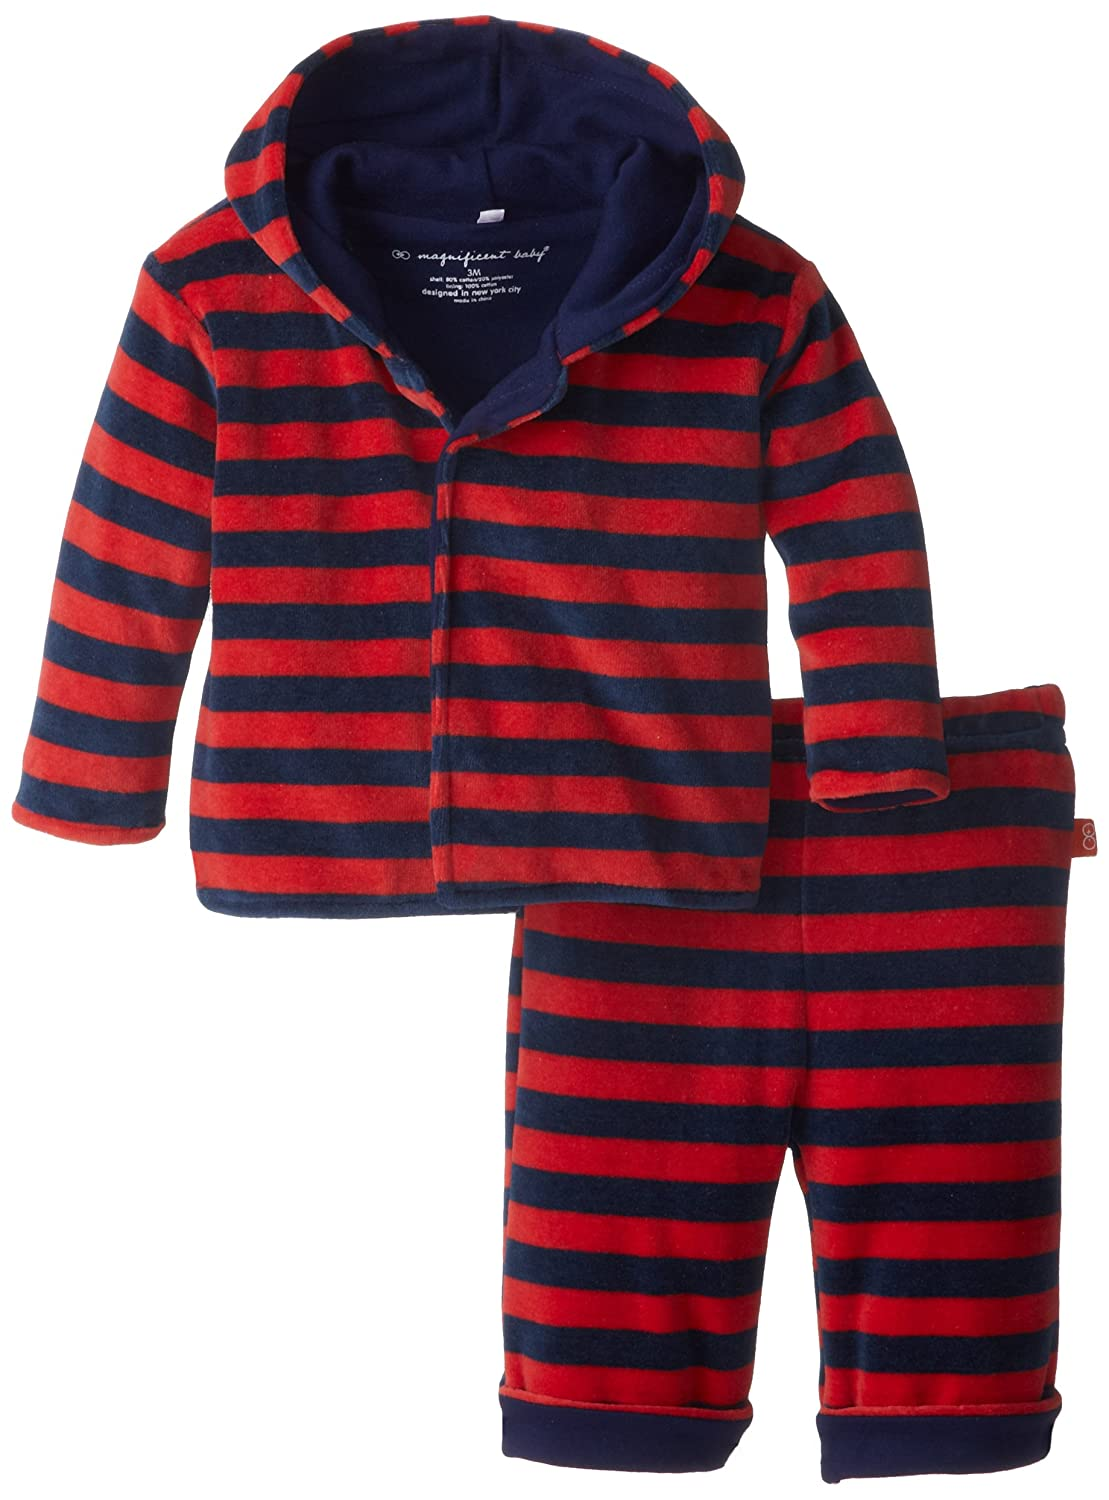 Magnificent Baby Baby-Boys Infant Velour Hoodie and Pants, Green/Navy, 3T 8024-B